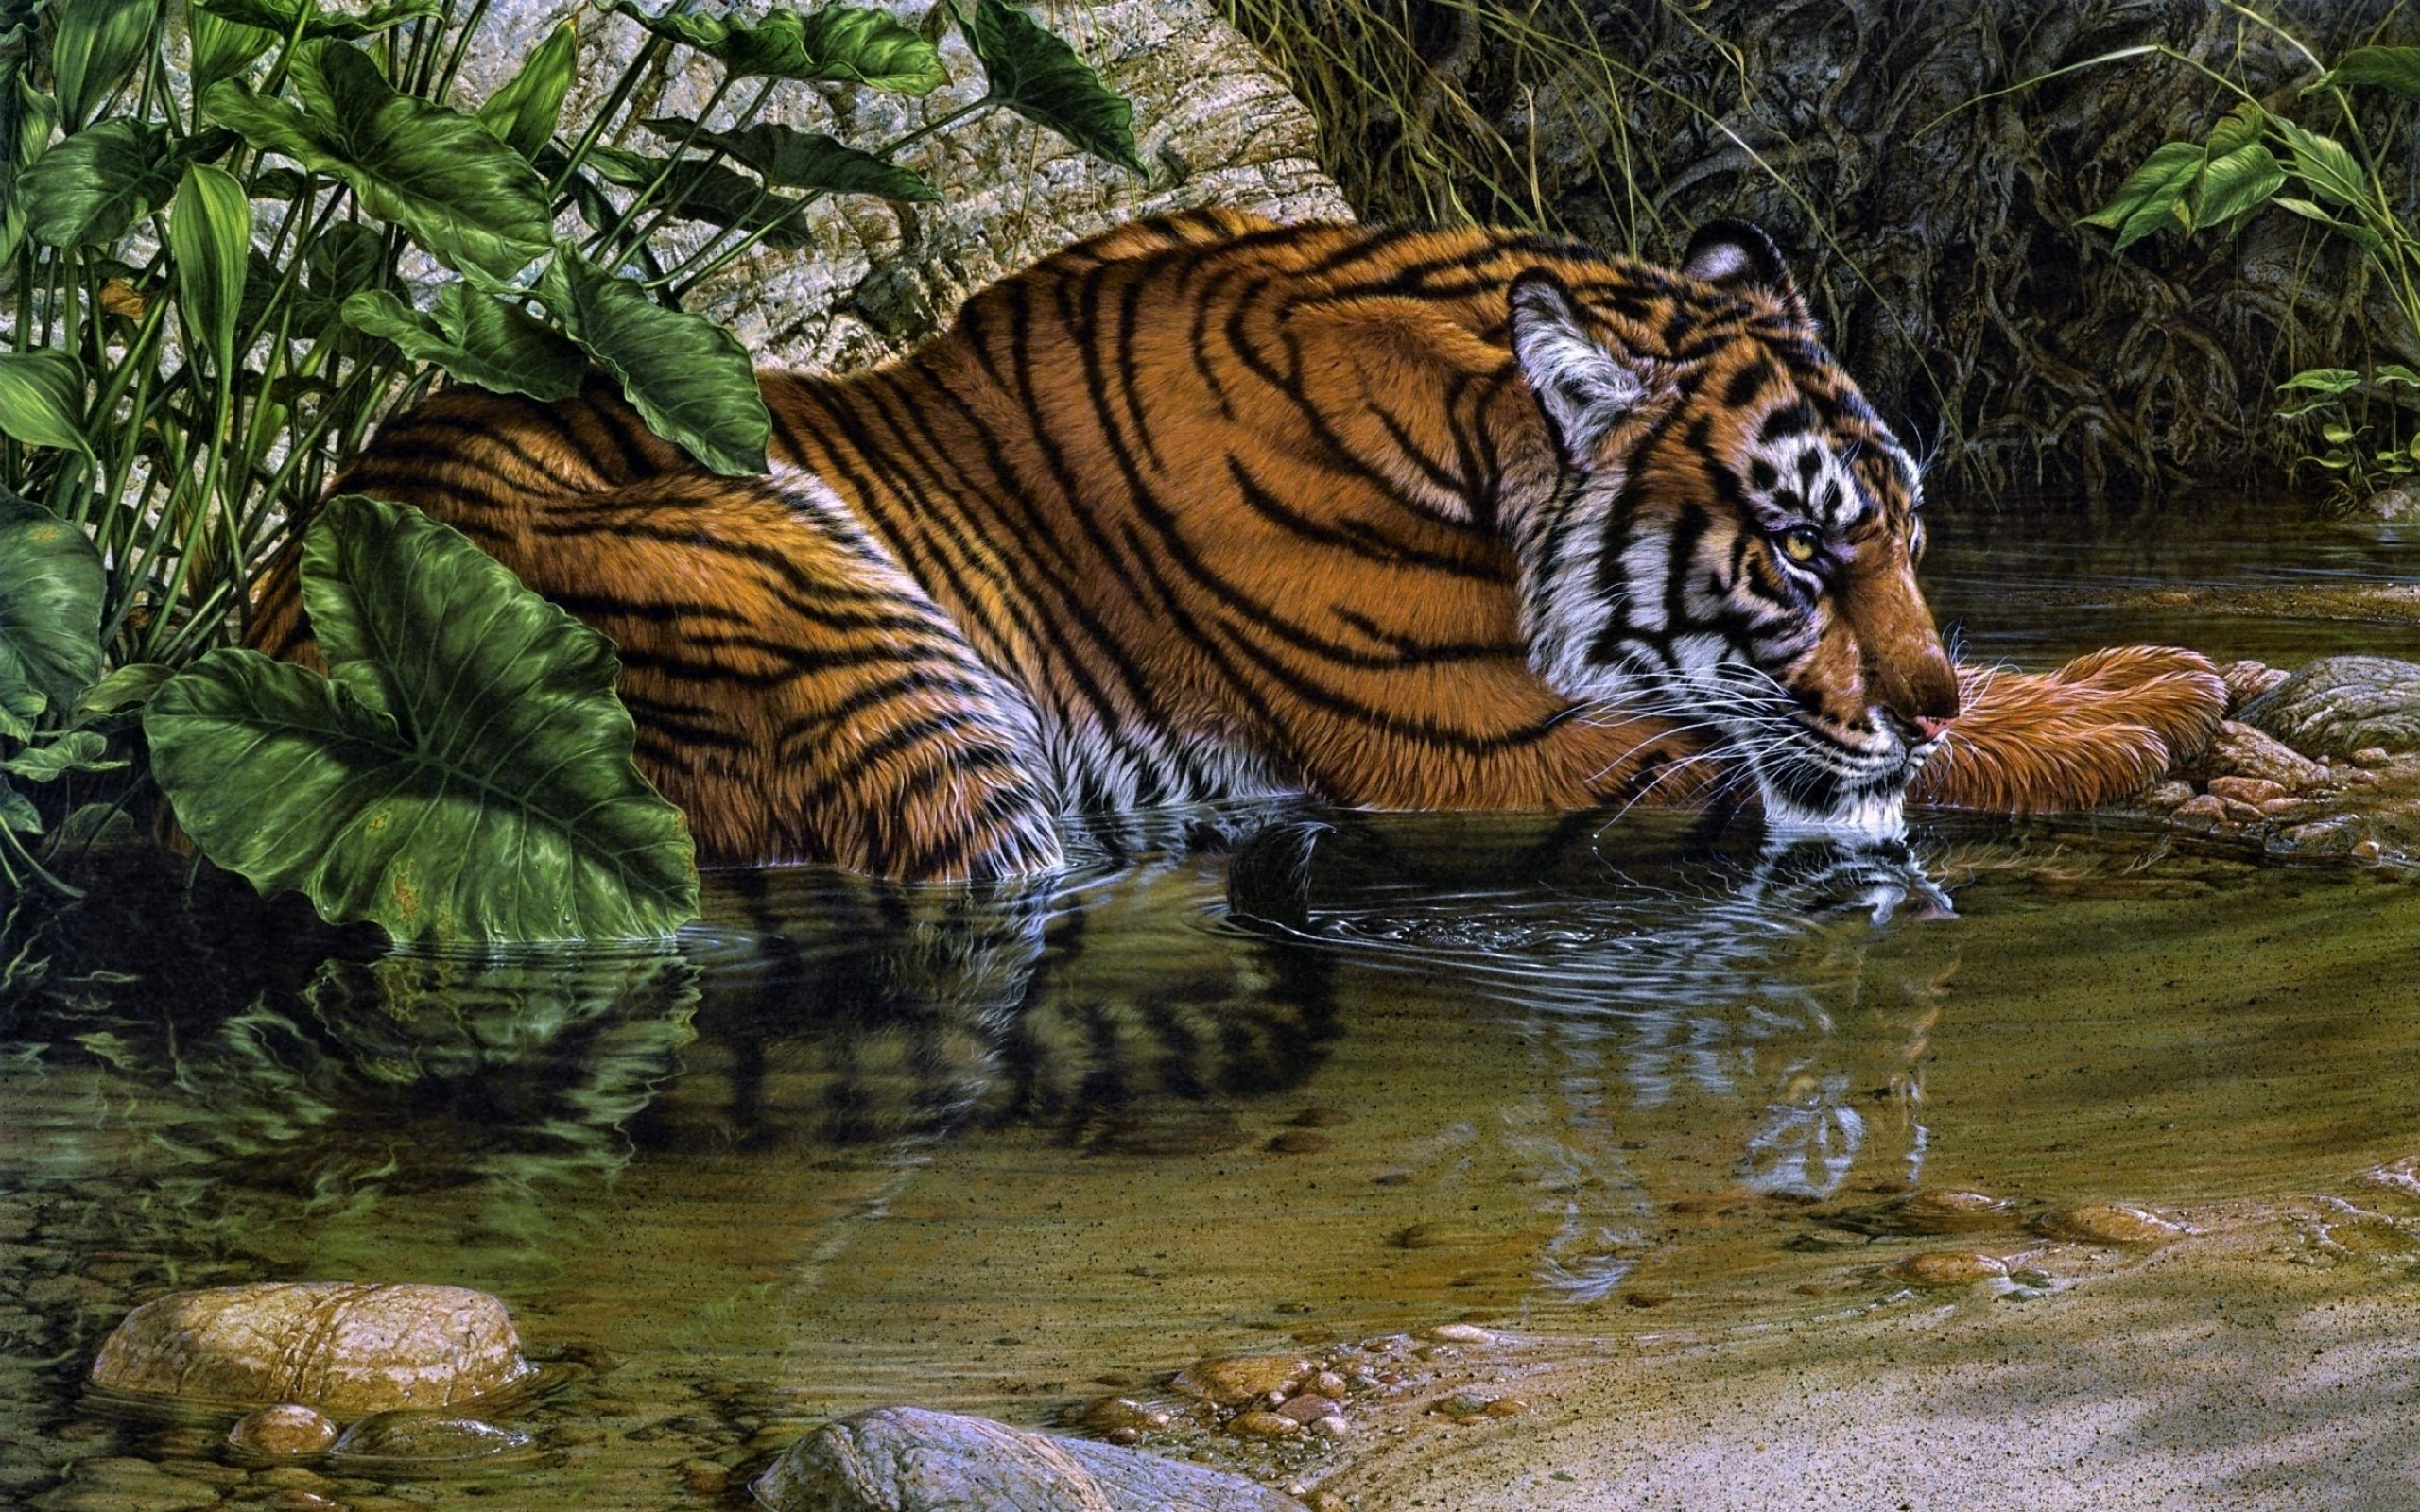 Tiger Drawing Art Wallpaper 2560x1600 112964 Wallpaperup